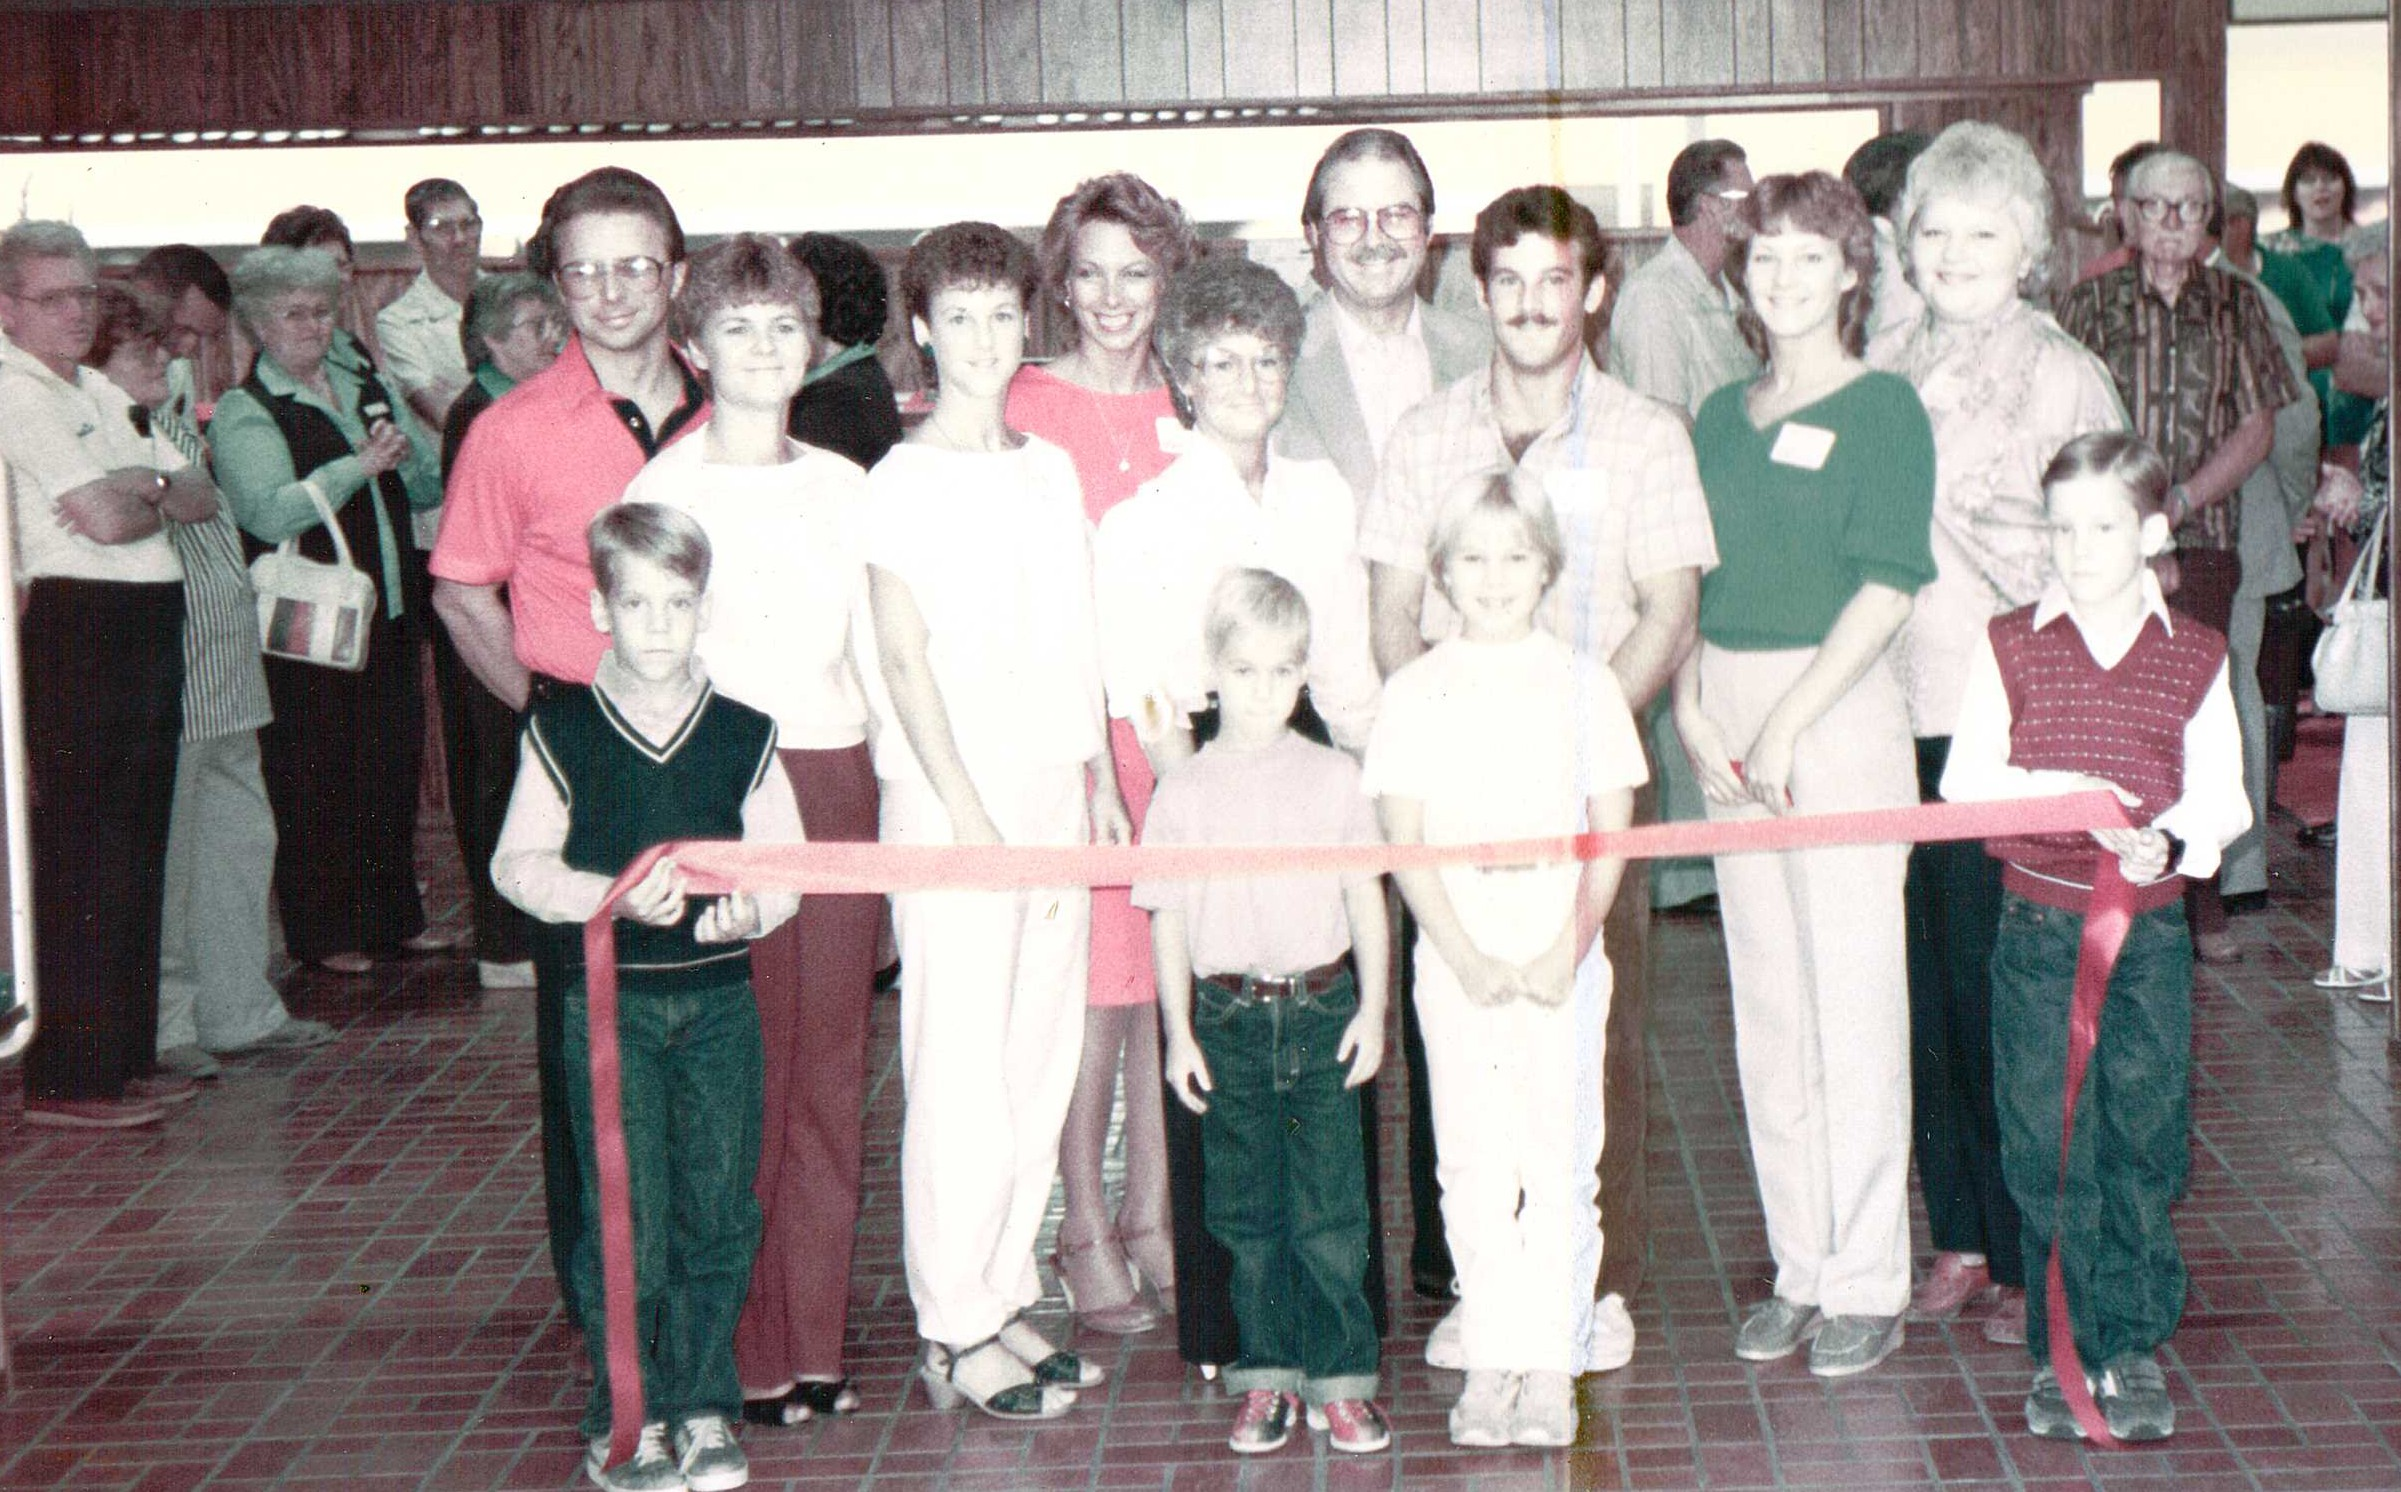 All Star Lanes Ribbon Cutting Ceremony August 1985